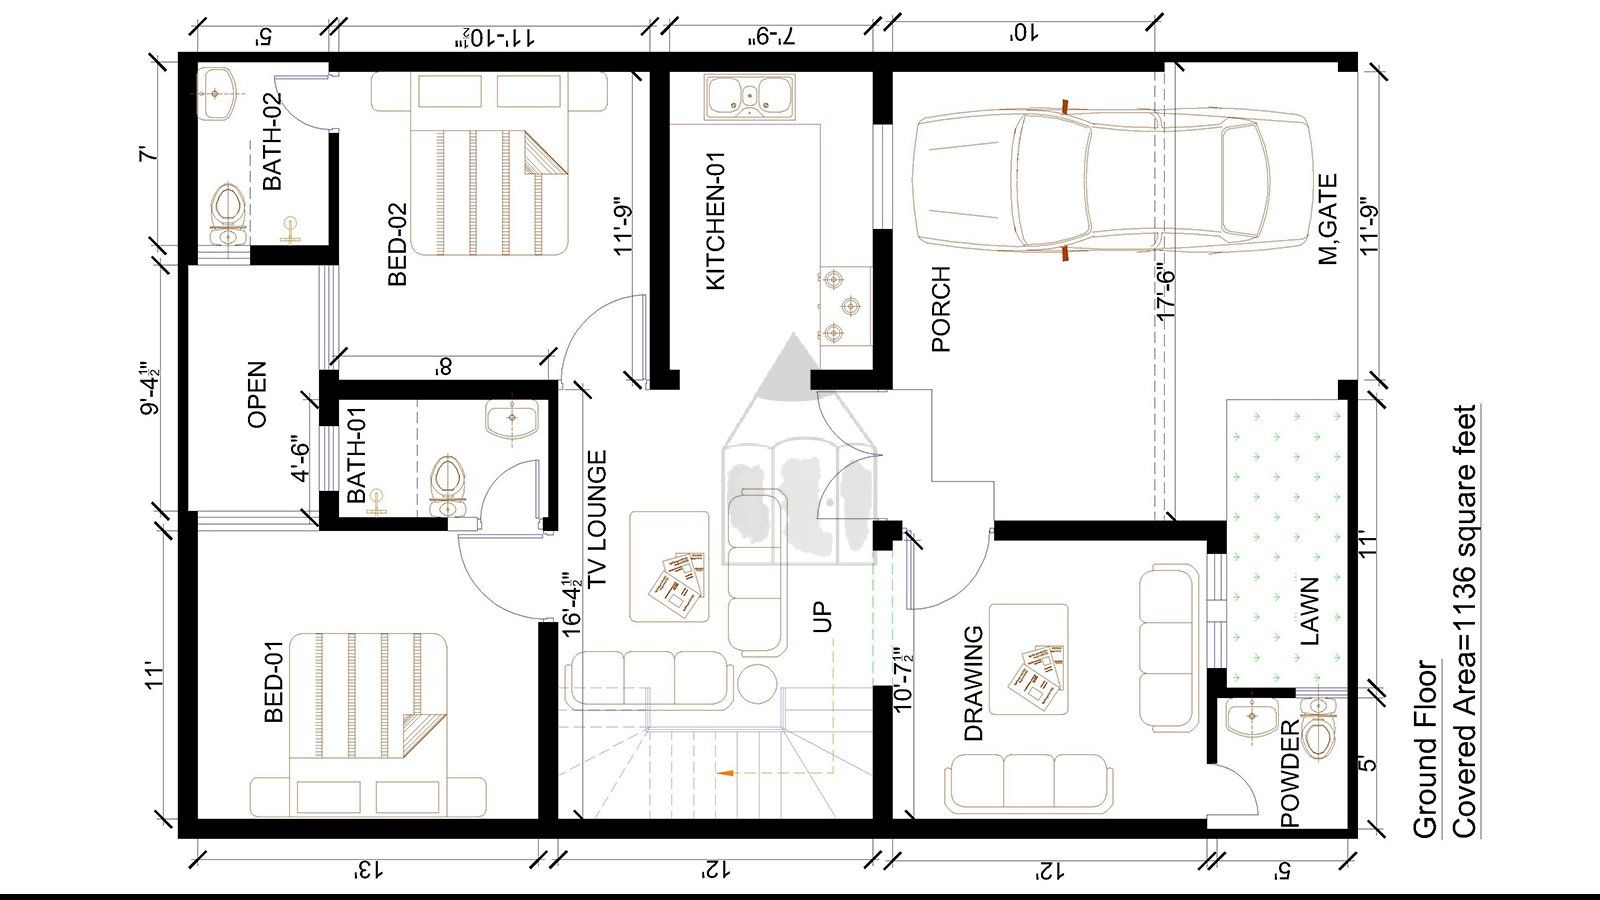 House Map Design And Layout Home Map Design House Map House Layout Plans